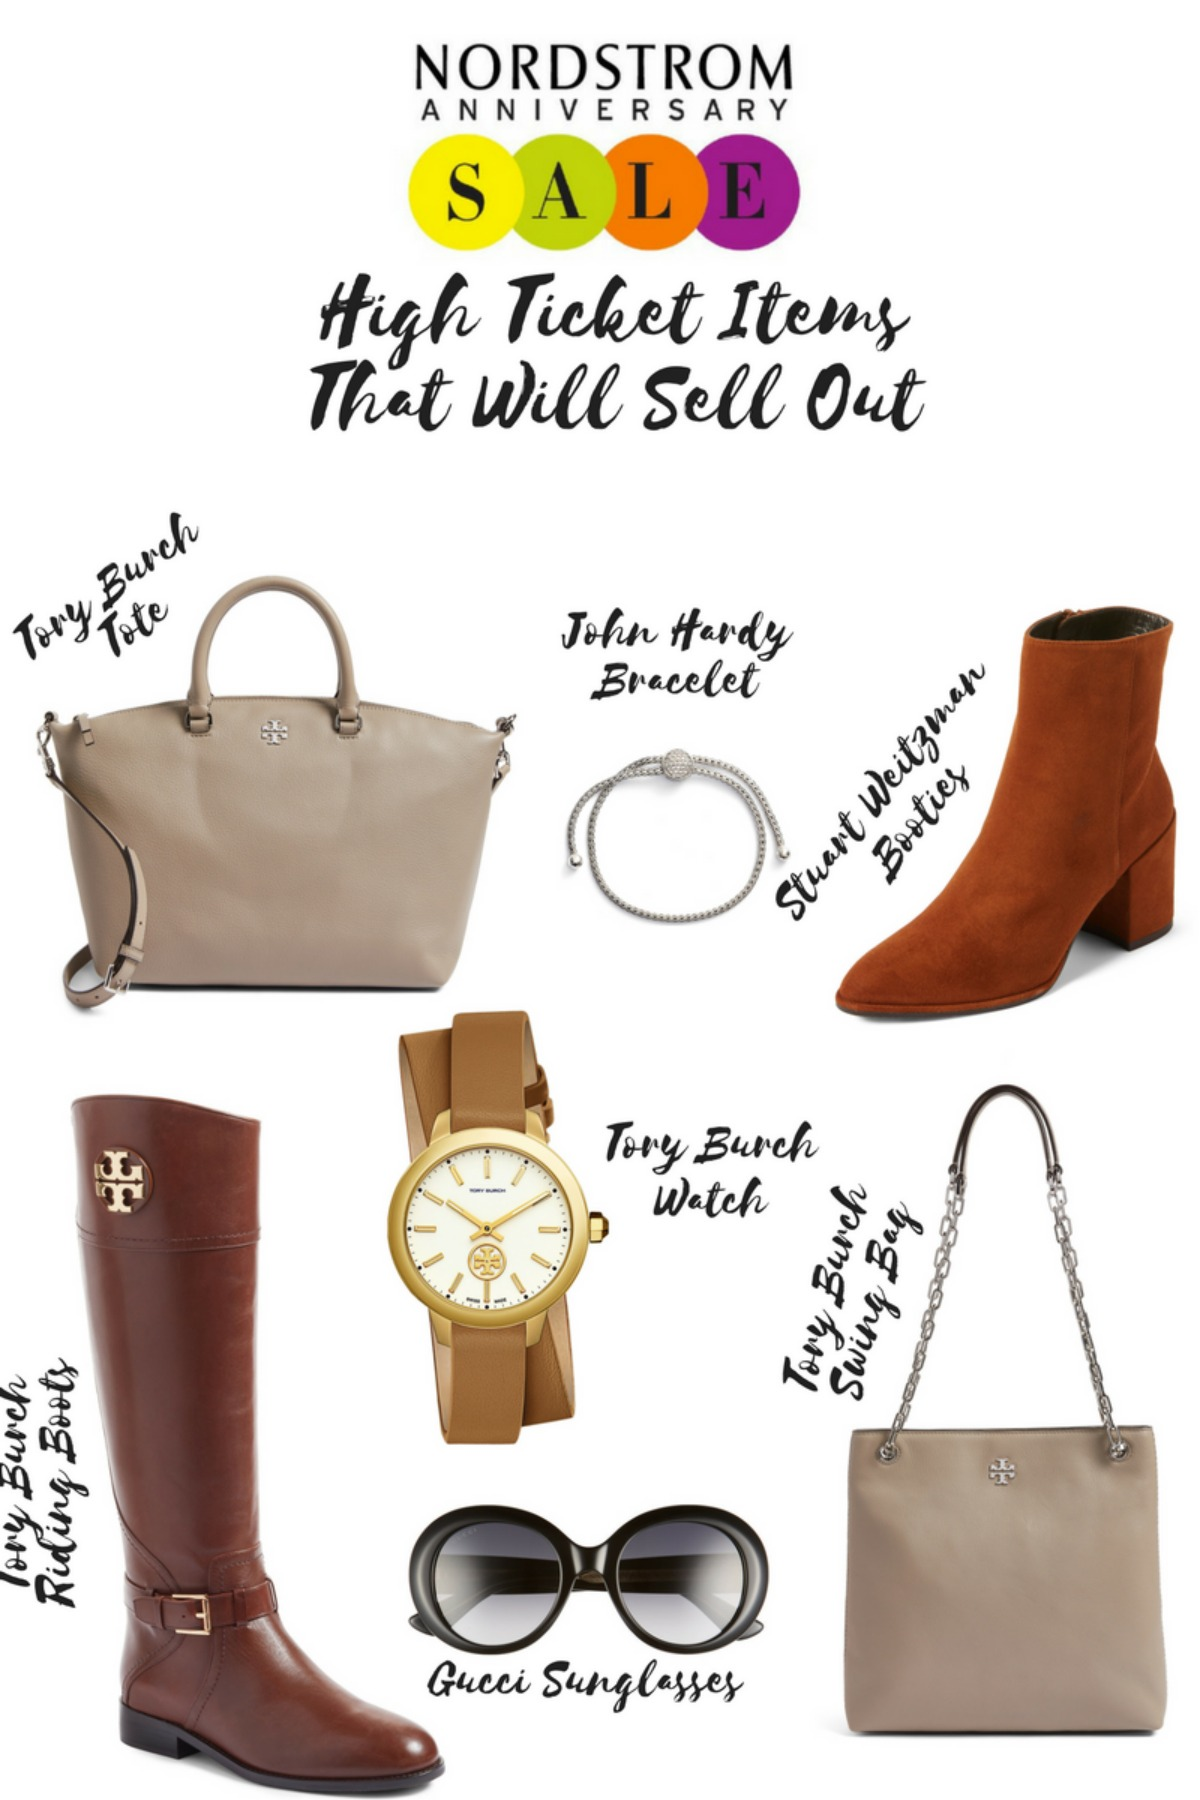 My Nordstrom Anniversary Sale Early Access Must Have List